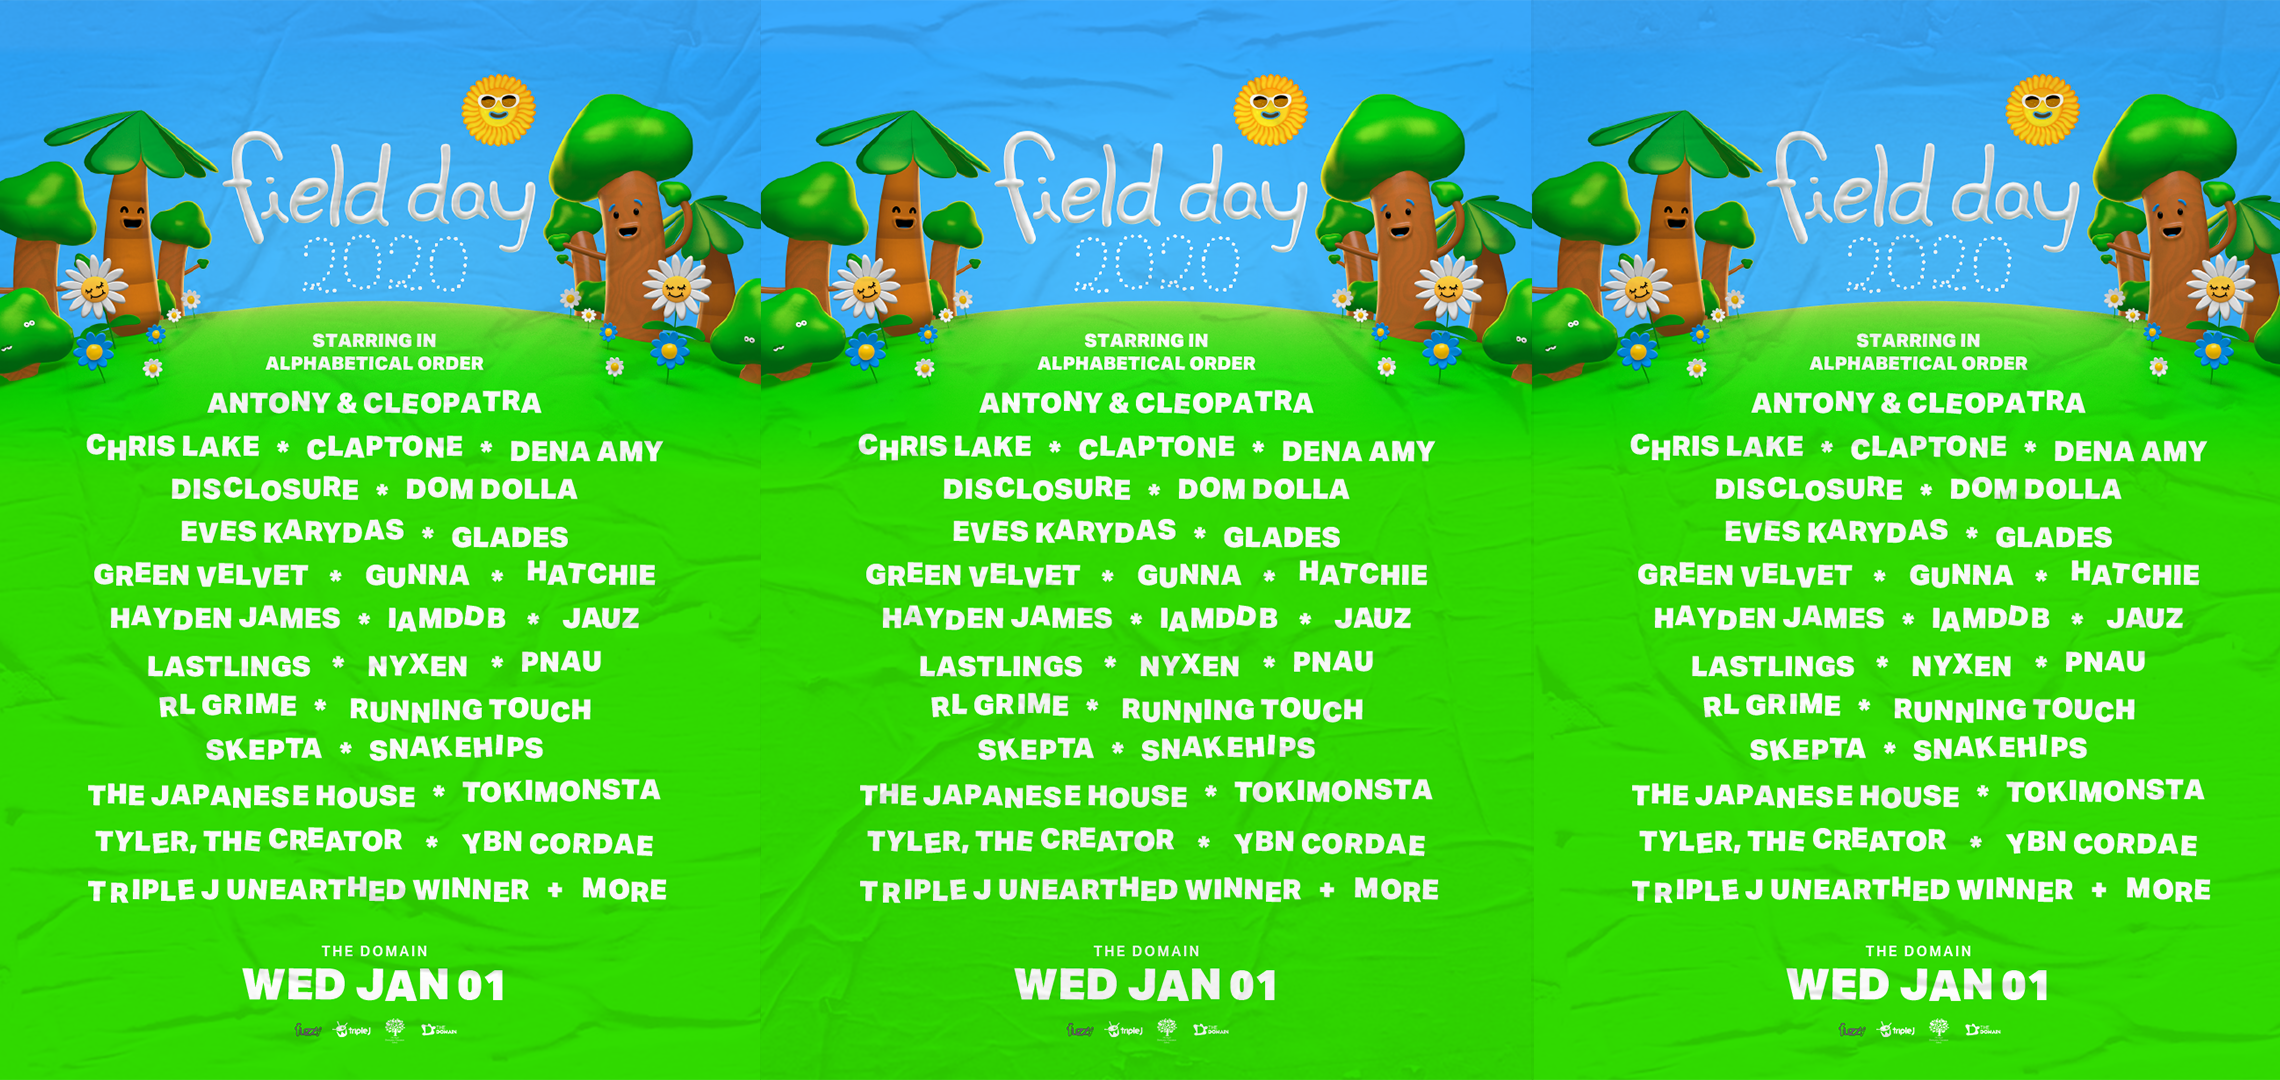 Field Day 2020 poster mockup.png